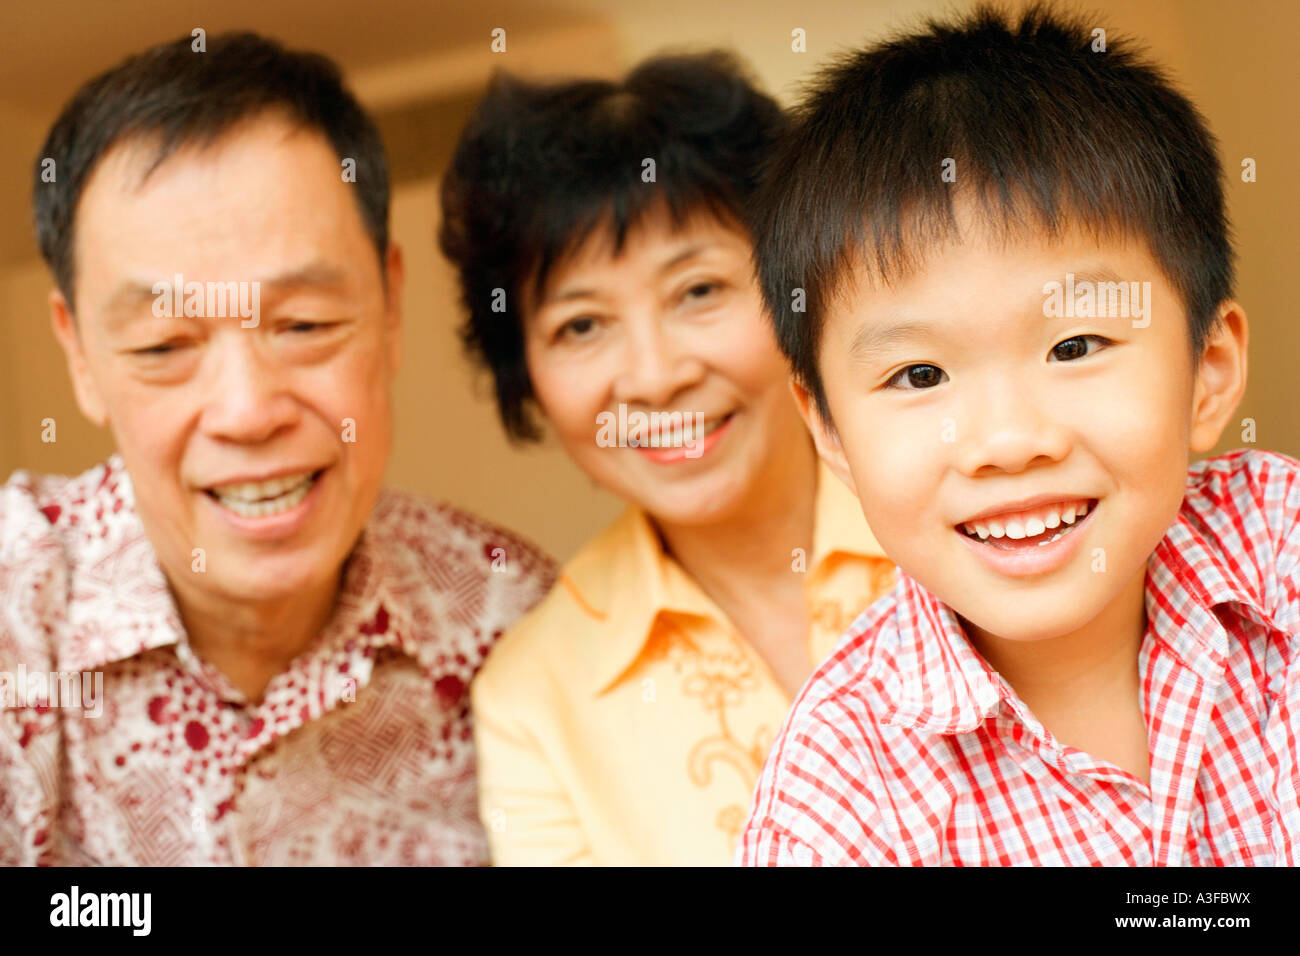 Portrait of a boy with his grandparents - Stock Image